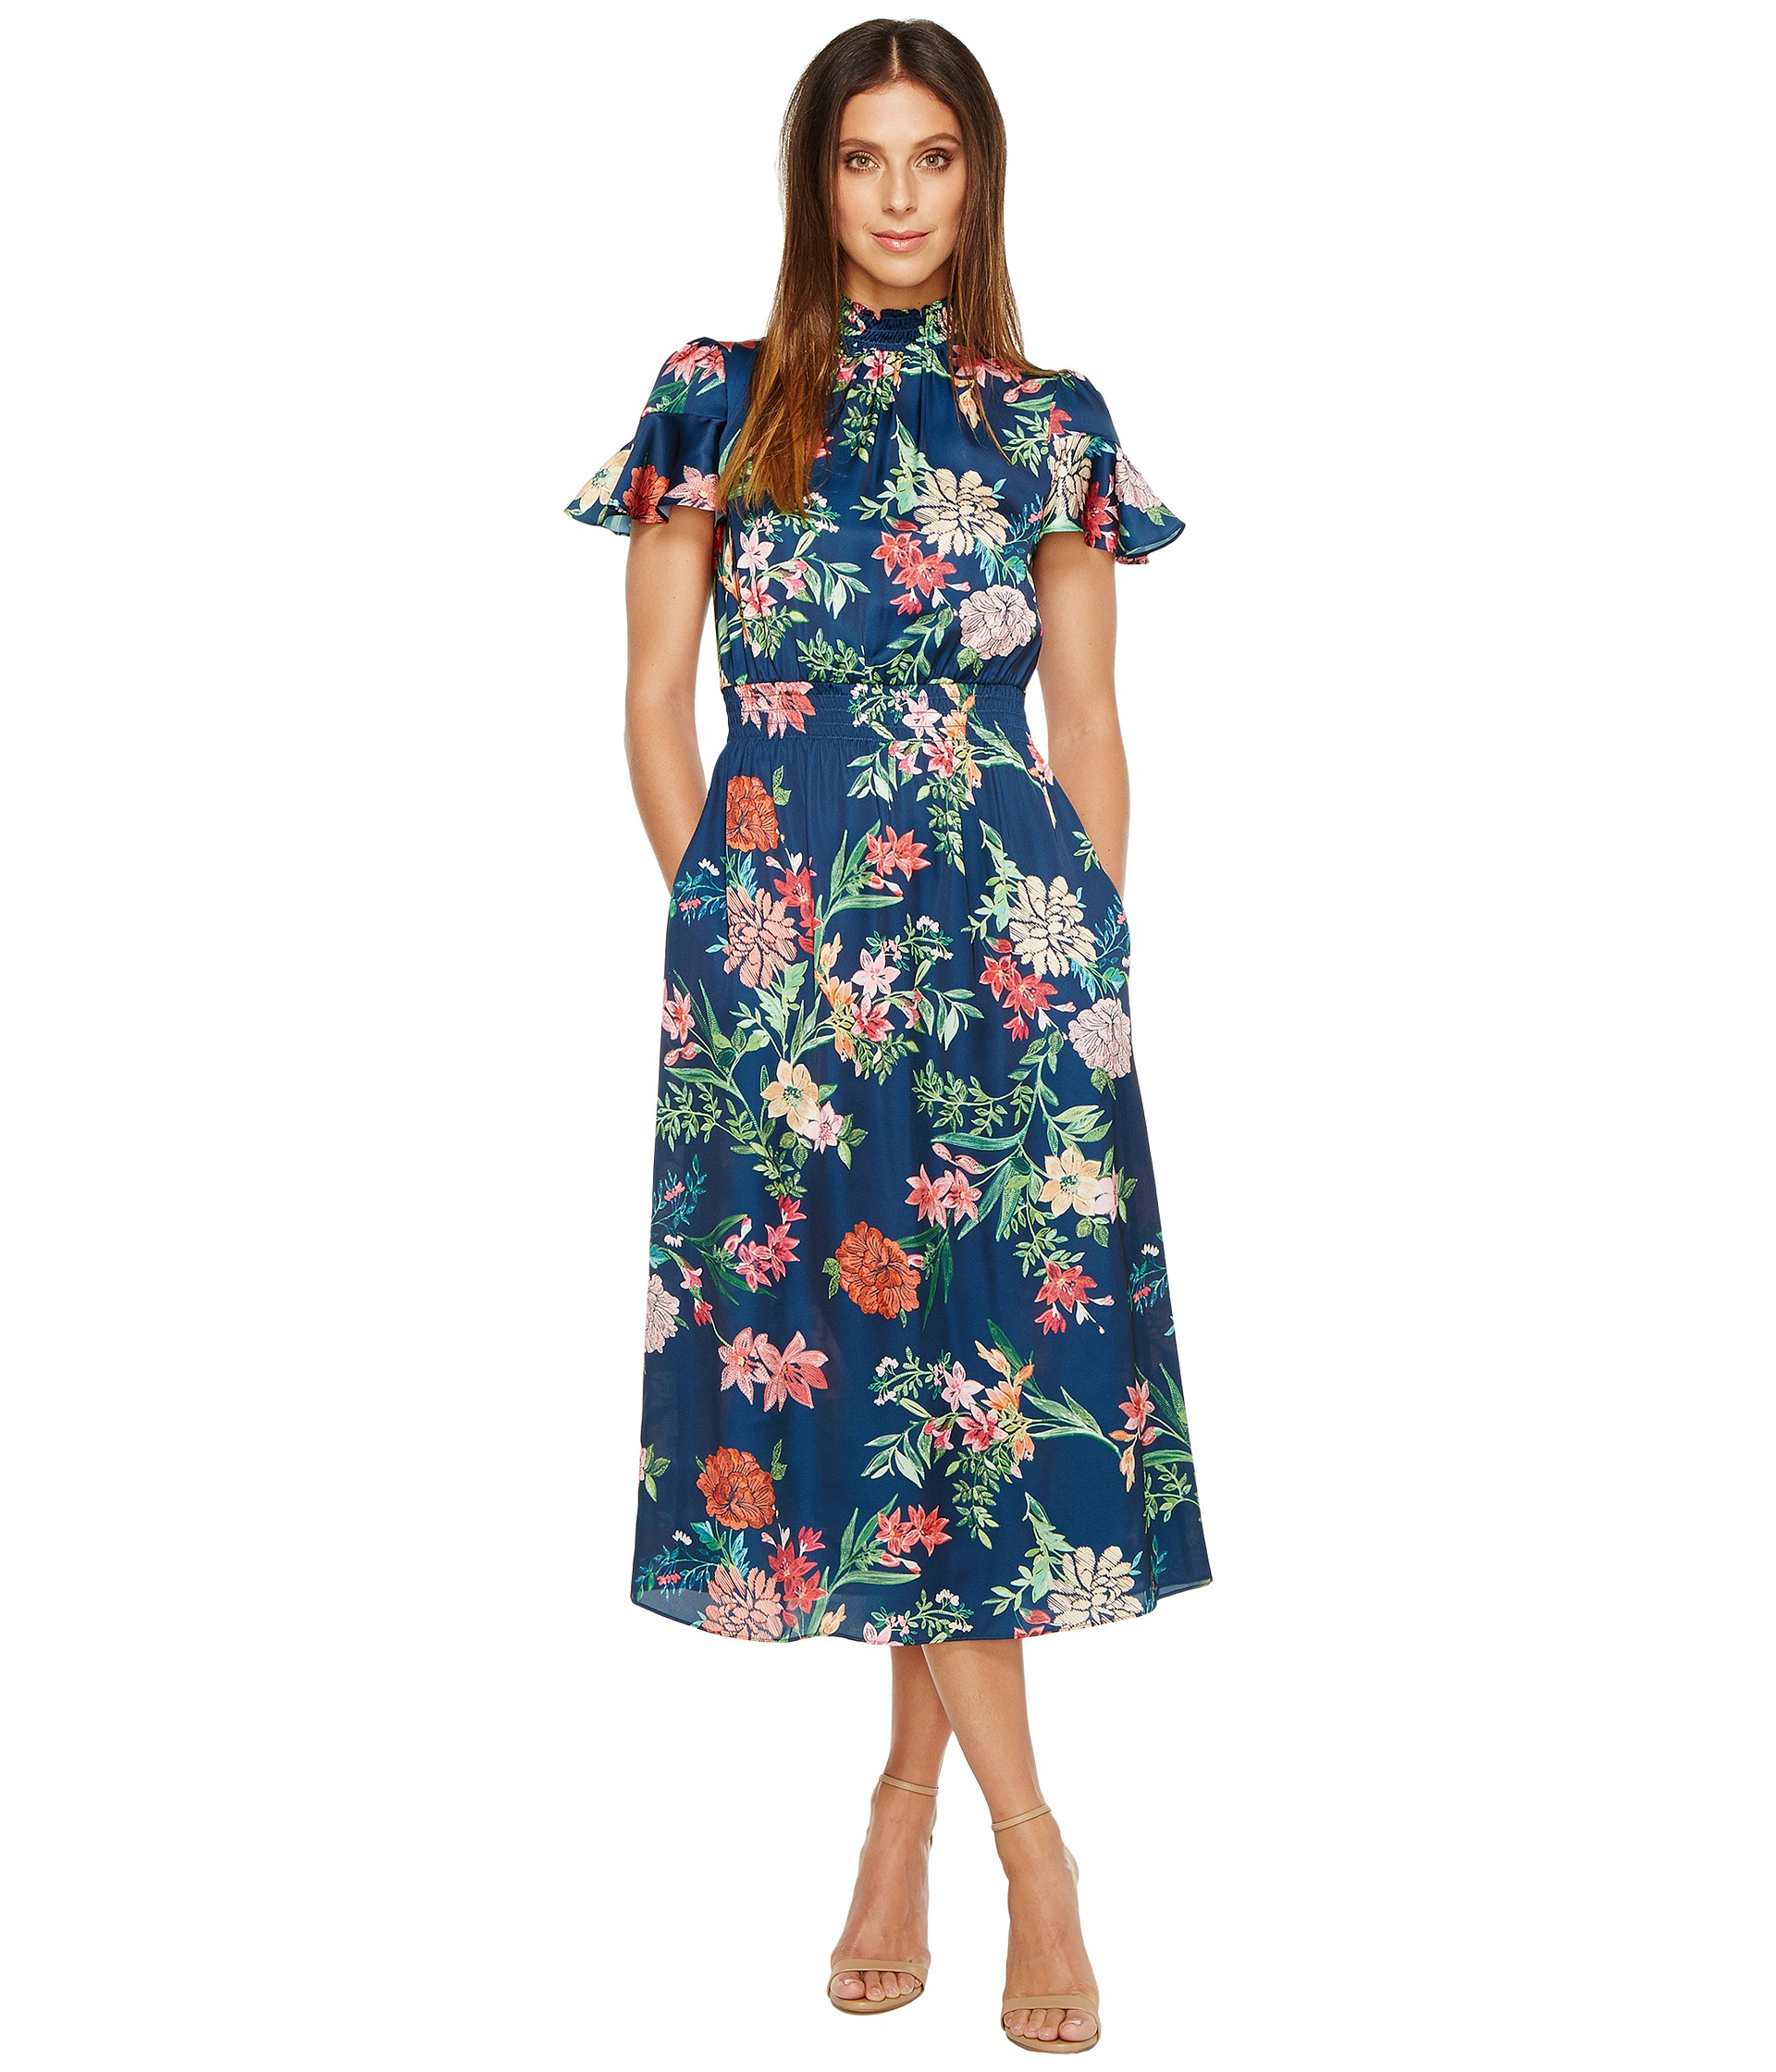 laundry by shelli segal laundry by shelli segal printed midi dress at zappos 12096